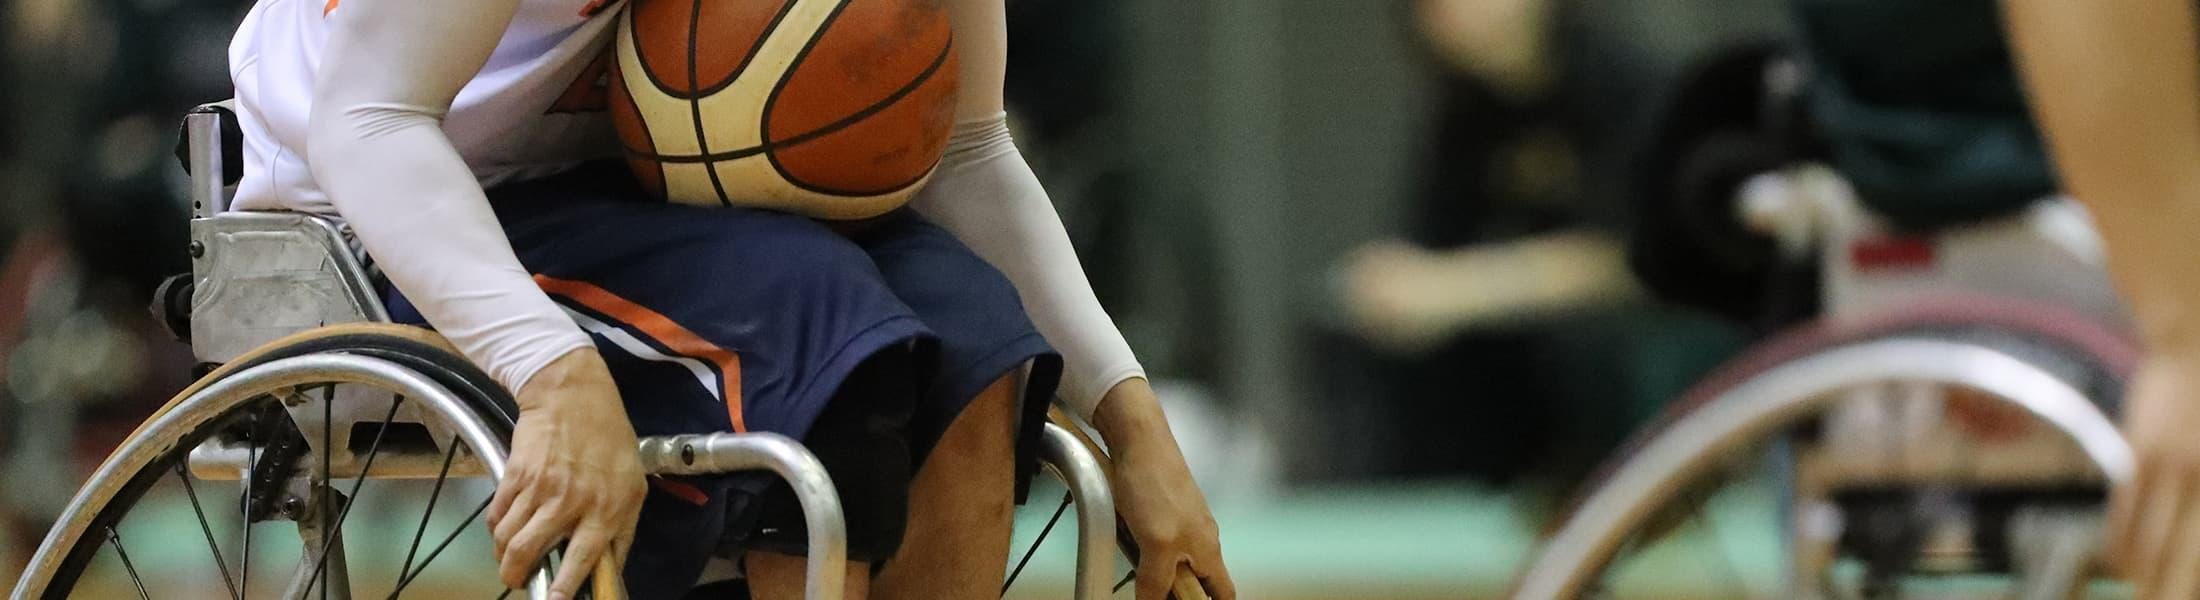 men's wheelchair basketball game